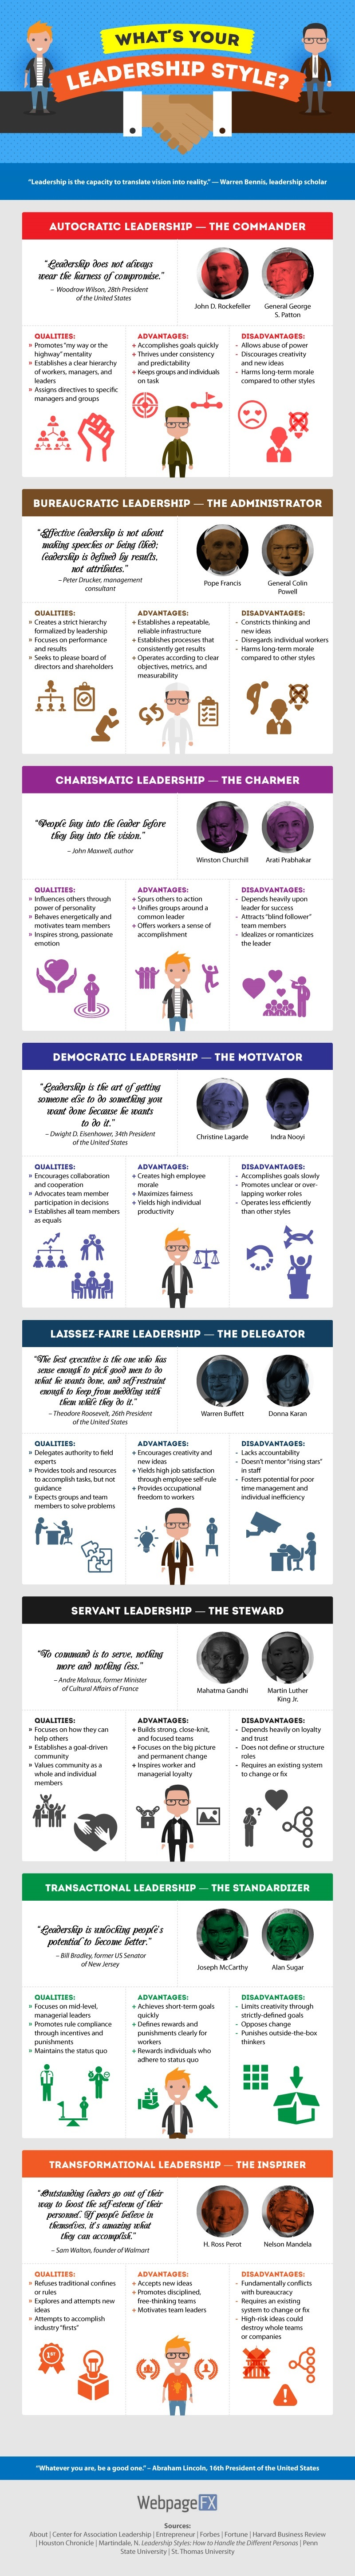 Pros And Cons Of Leadership Styles